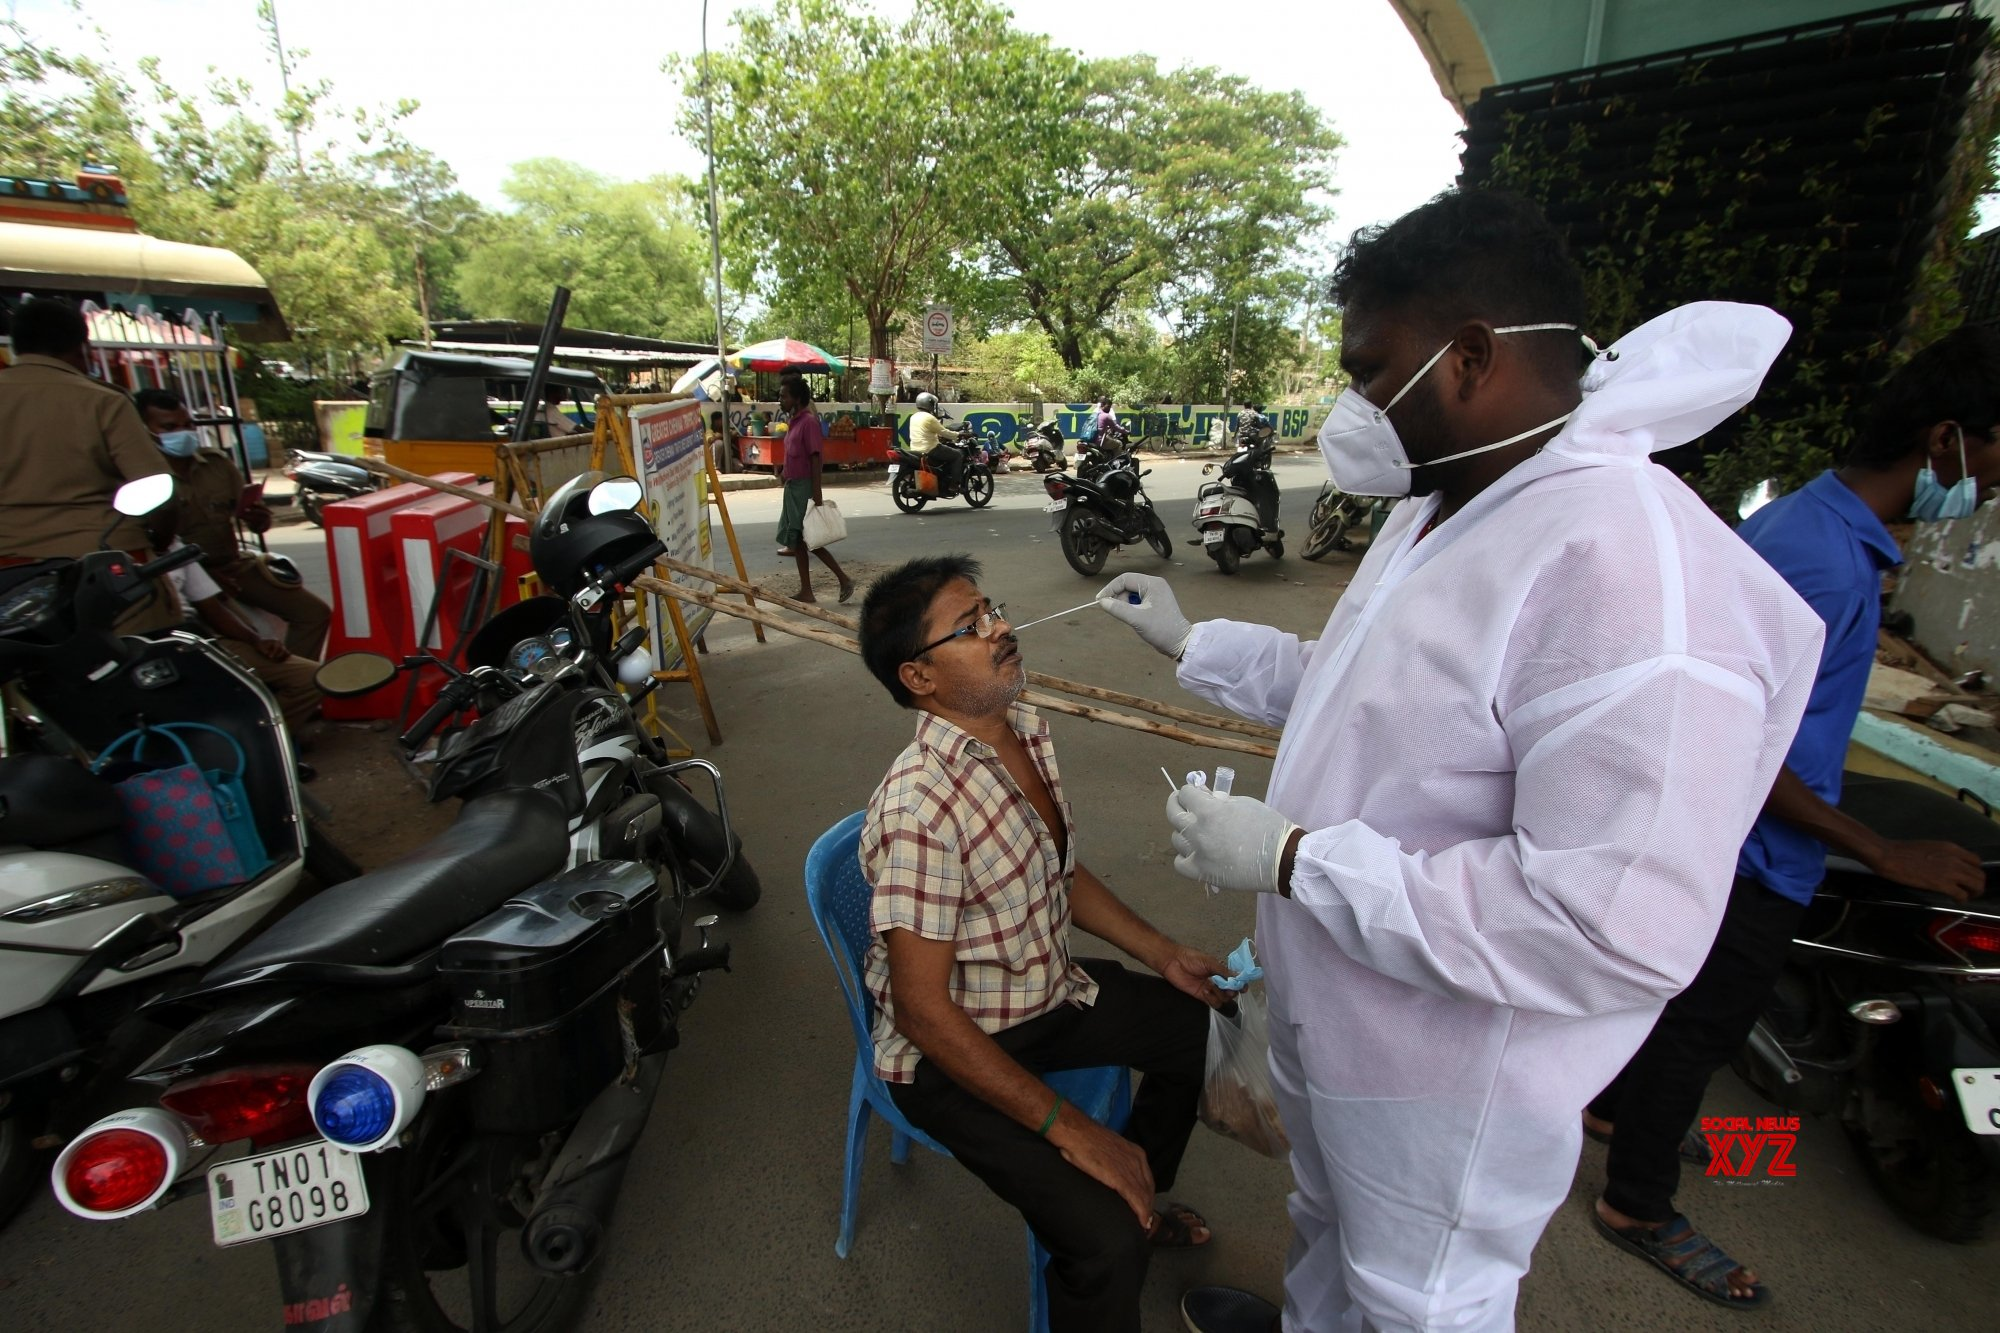 Chennai: Motorists who do not wear masks are being taken to swab test on the middle of the roads - in Chennai. #Gallery